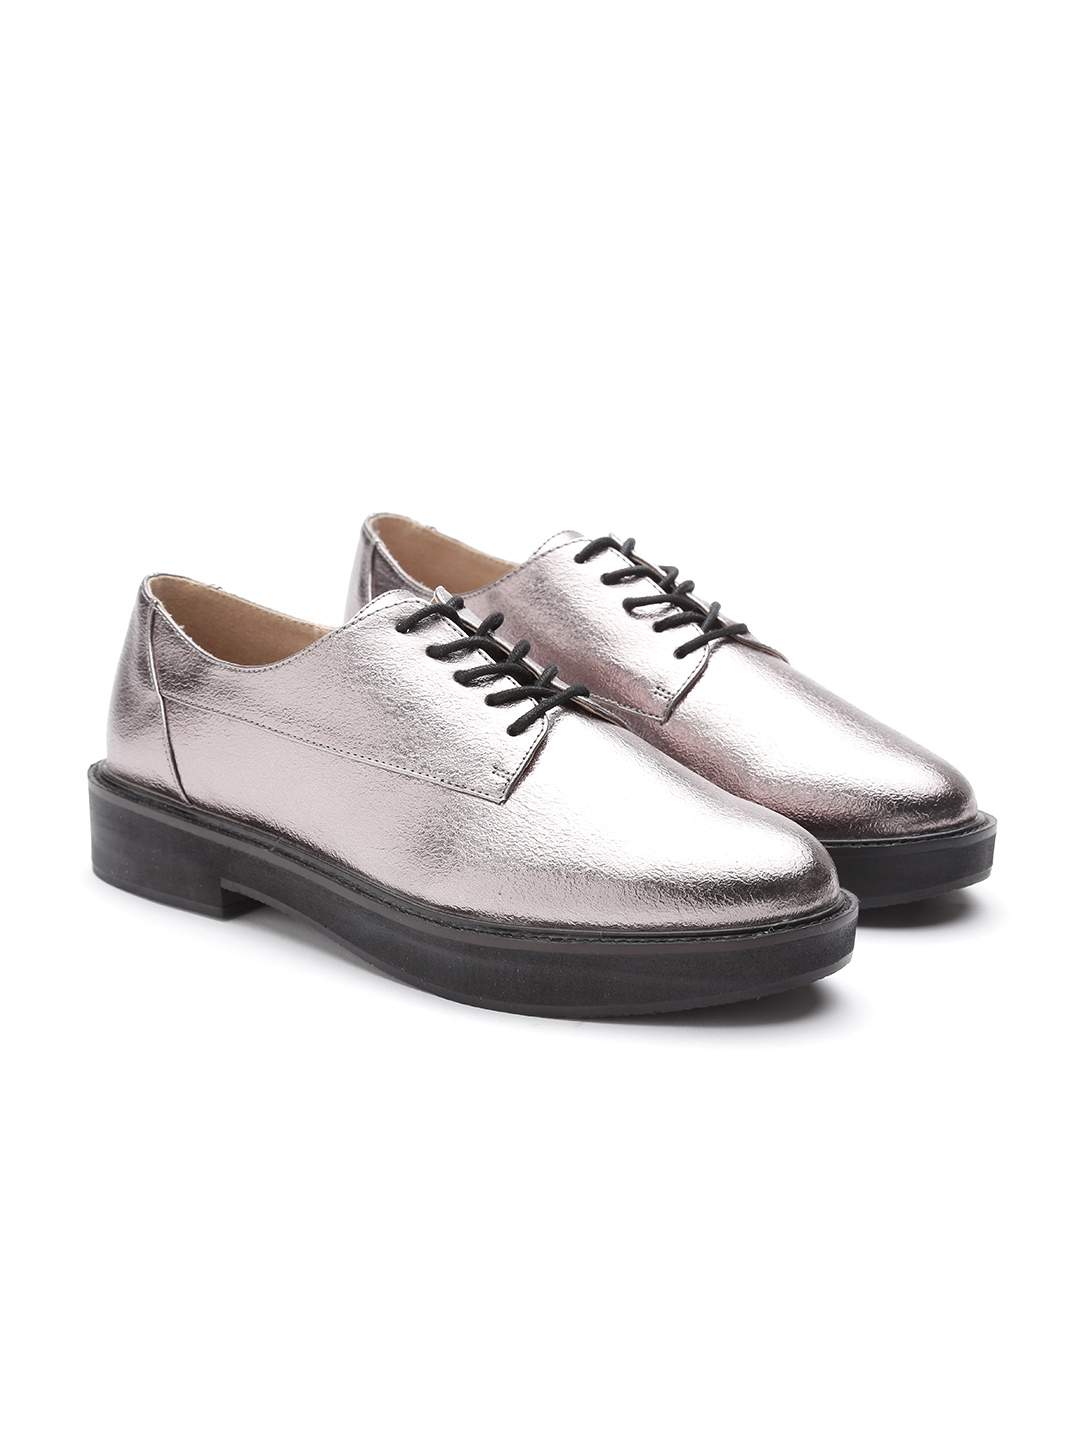 be525dee3d9 Buy MANGO Women Gunmetal Toned Derbys - Casual Shoes for Women ...